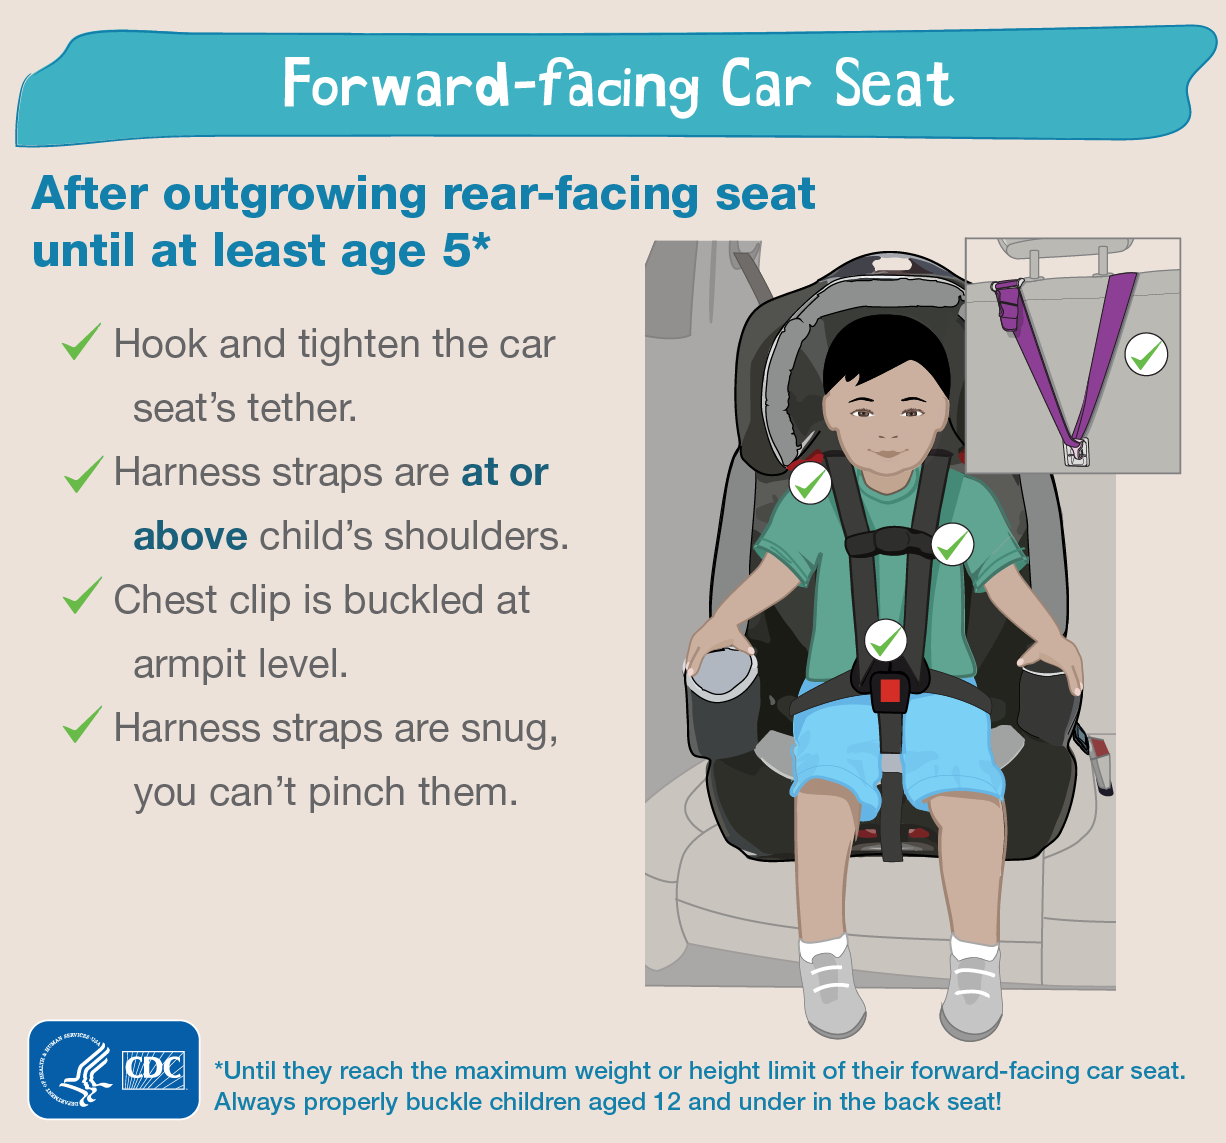 Motor Vehicle Safety Cdc Injury, Is There A Law On Forward Facing Car Seats